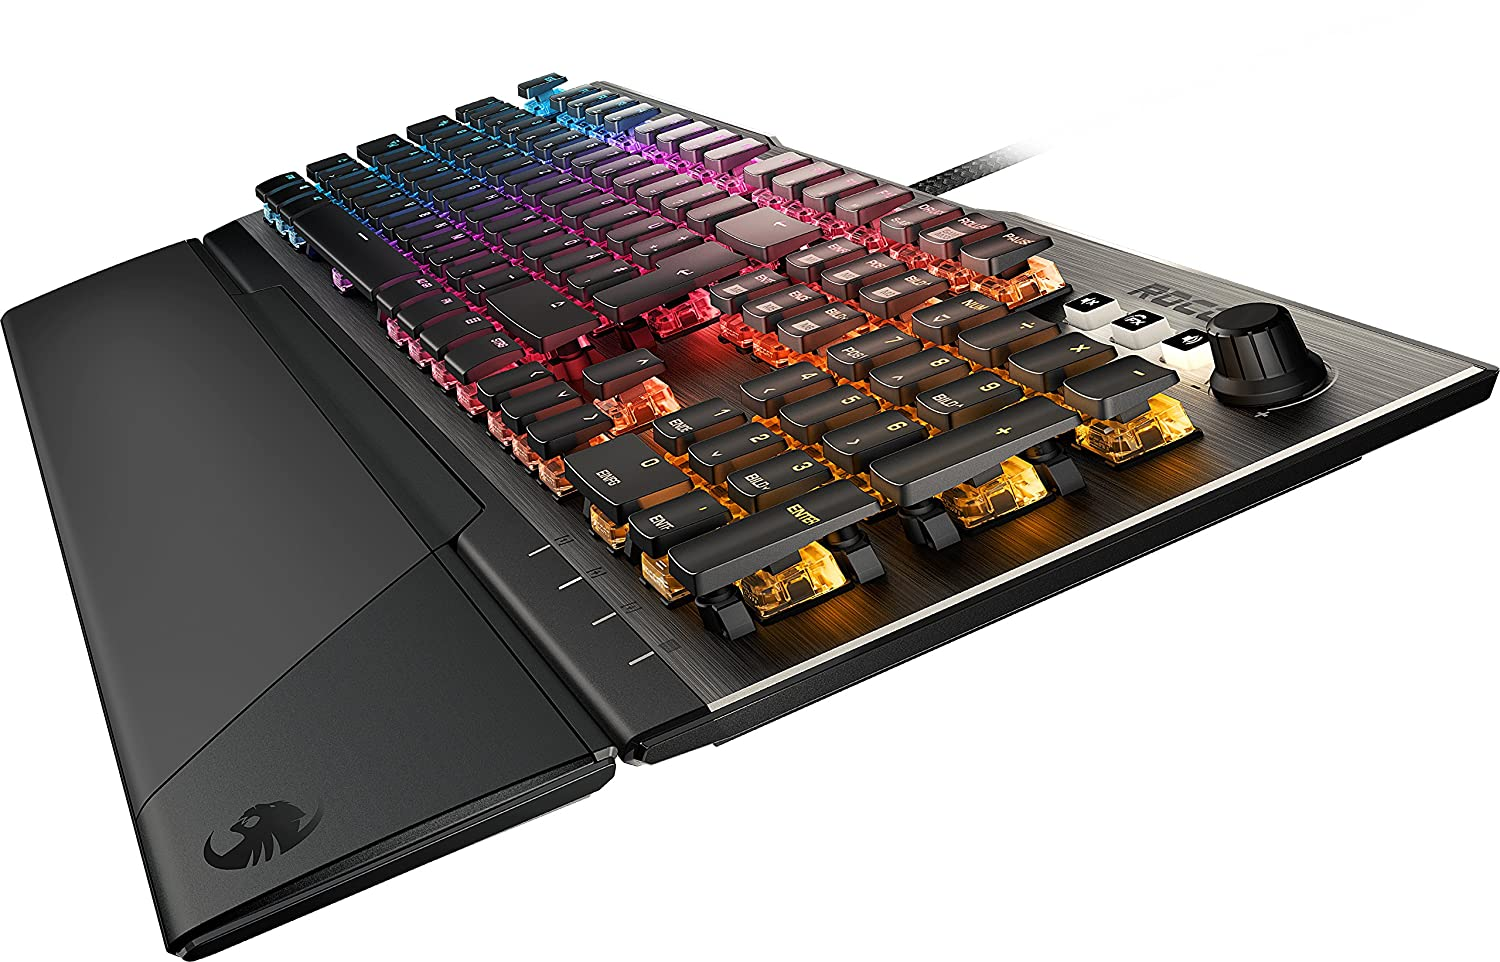 0e7df4f3289 ROCCAT Vulcan 120 - Mechanical RGB Gaming Keyboard, AIMO LED Per-Key  lighting, ROCCAT Titan switches, durable design (aluminum top plate),  multimedia wheel, ...